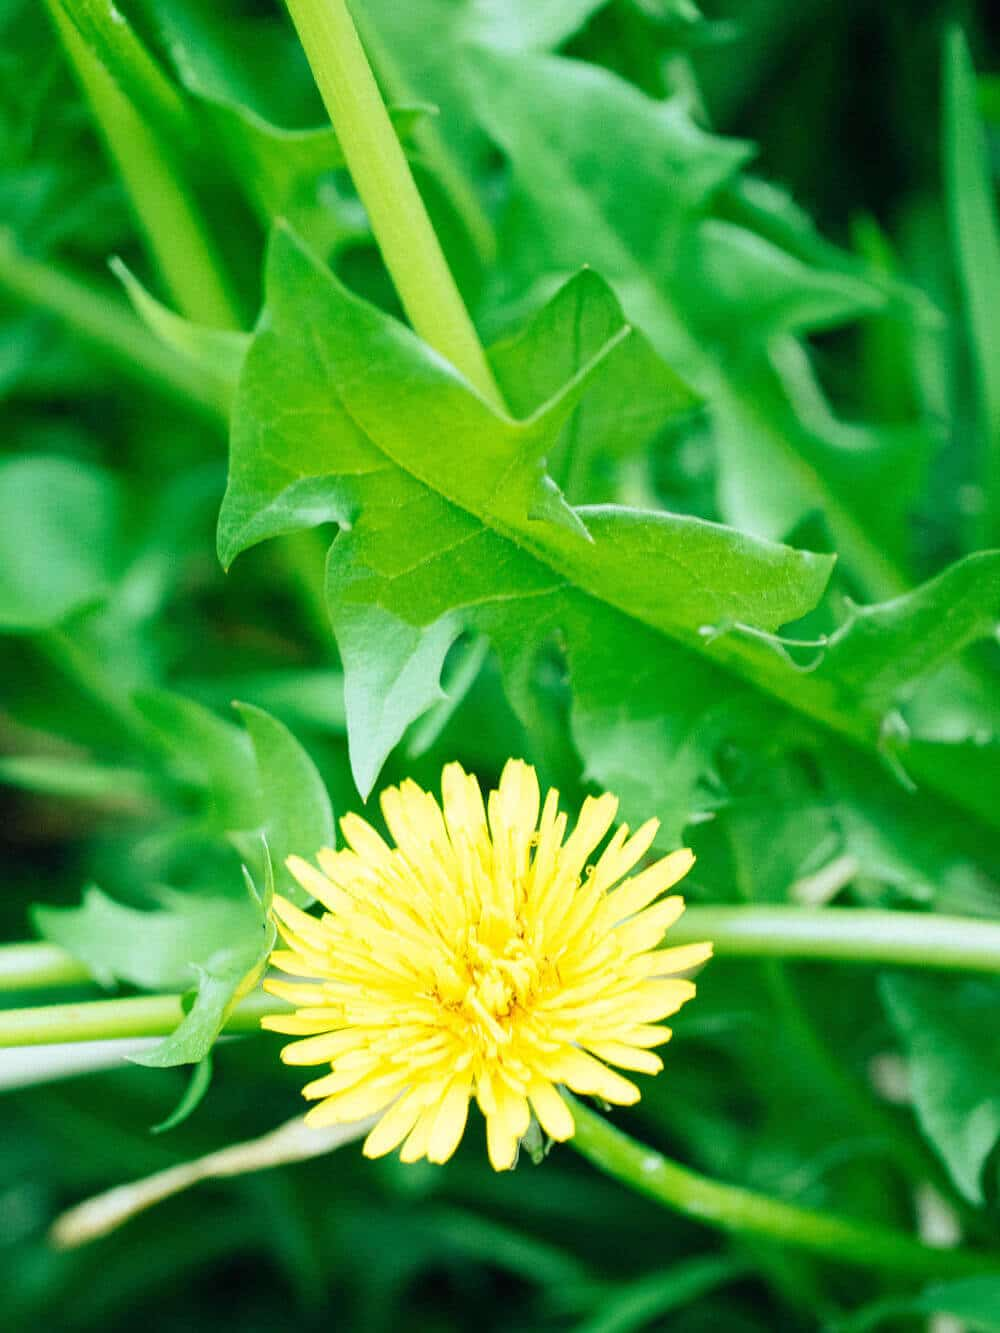 Dandelions add color to the drab landscape of early spring